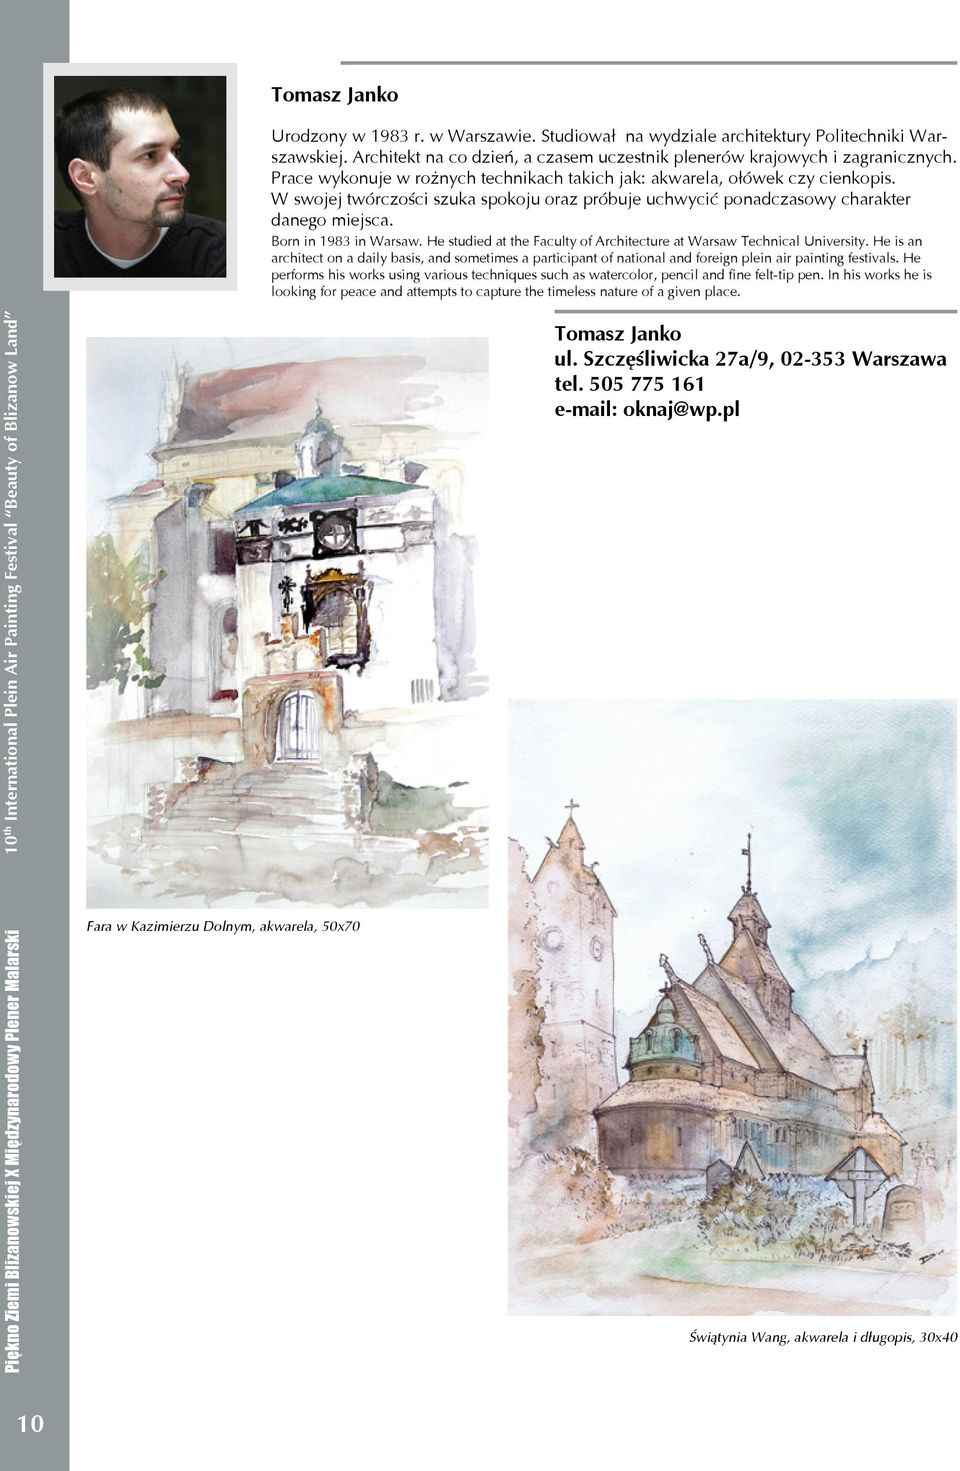 He studied at the Faculty of Architecture at Warsaw Technical University. He is an architect on a daily basis, and sometimes a participant of national and foreign plein air painting festivals.